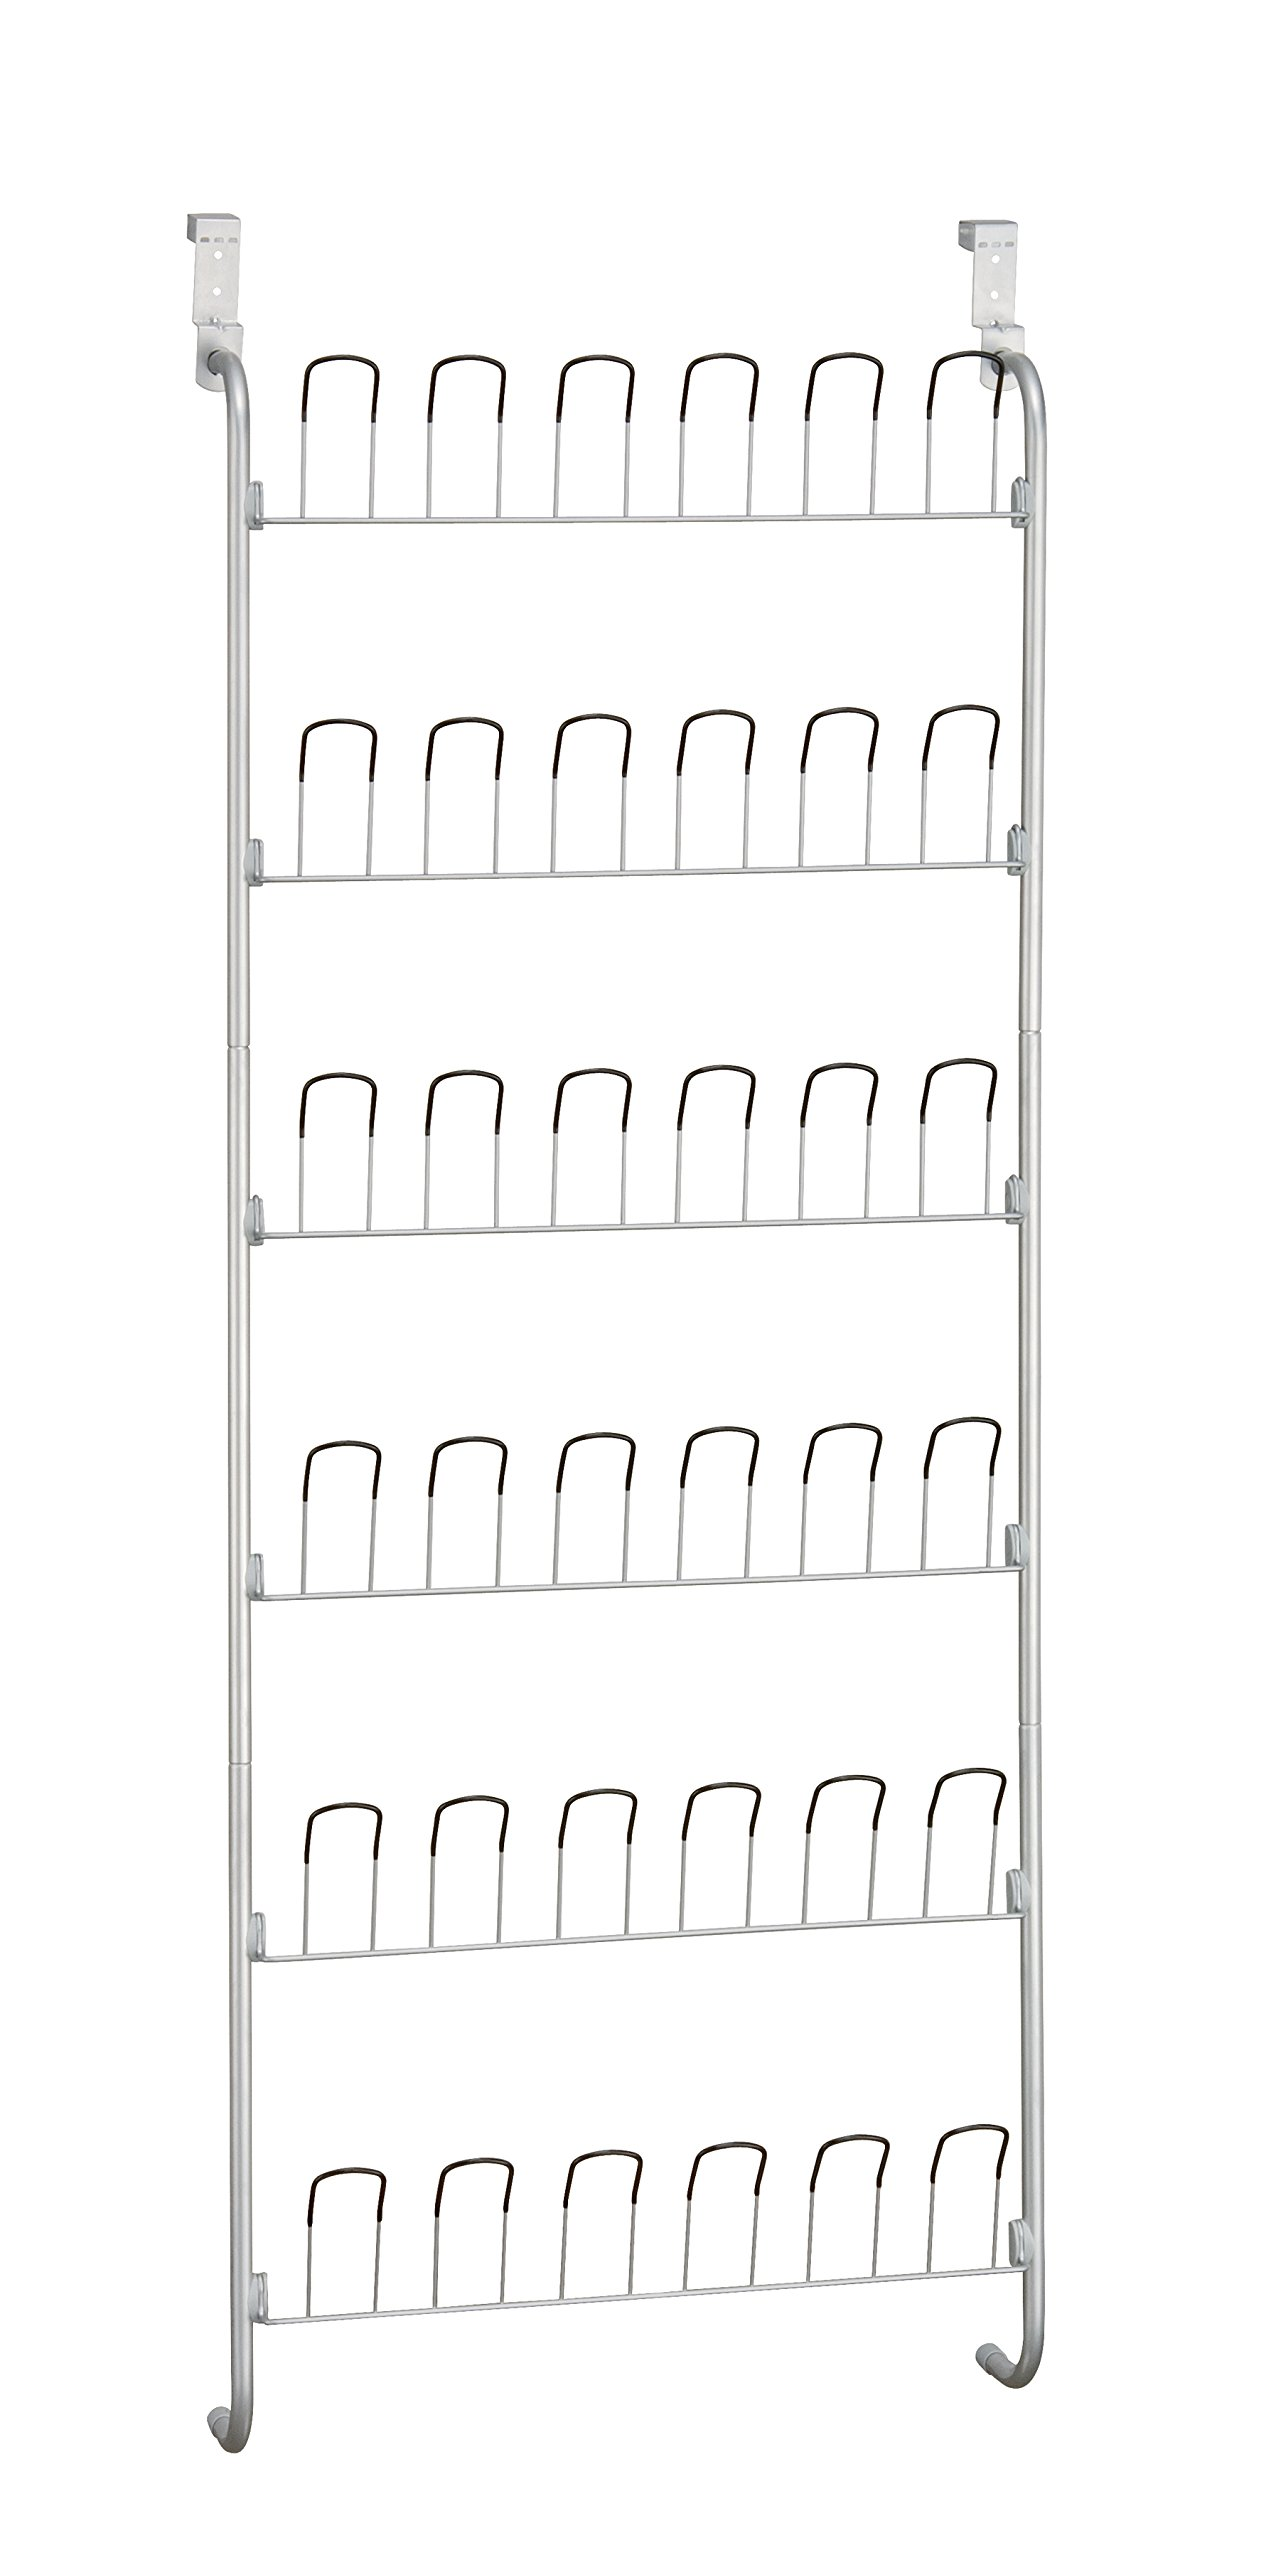 Organize It All Over-The-Door 18 Pair Hanging Wire Shoe Rack by Neu Home